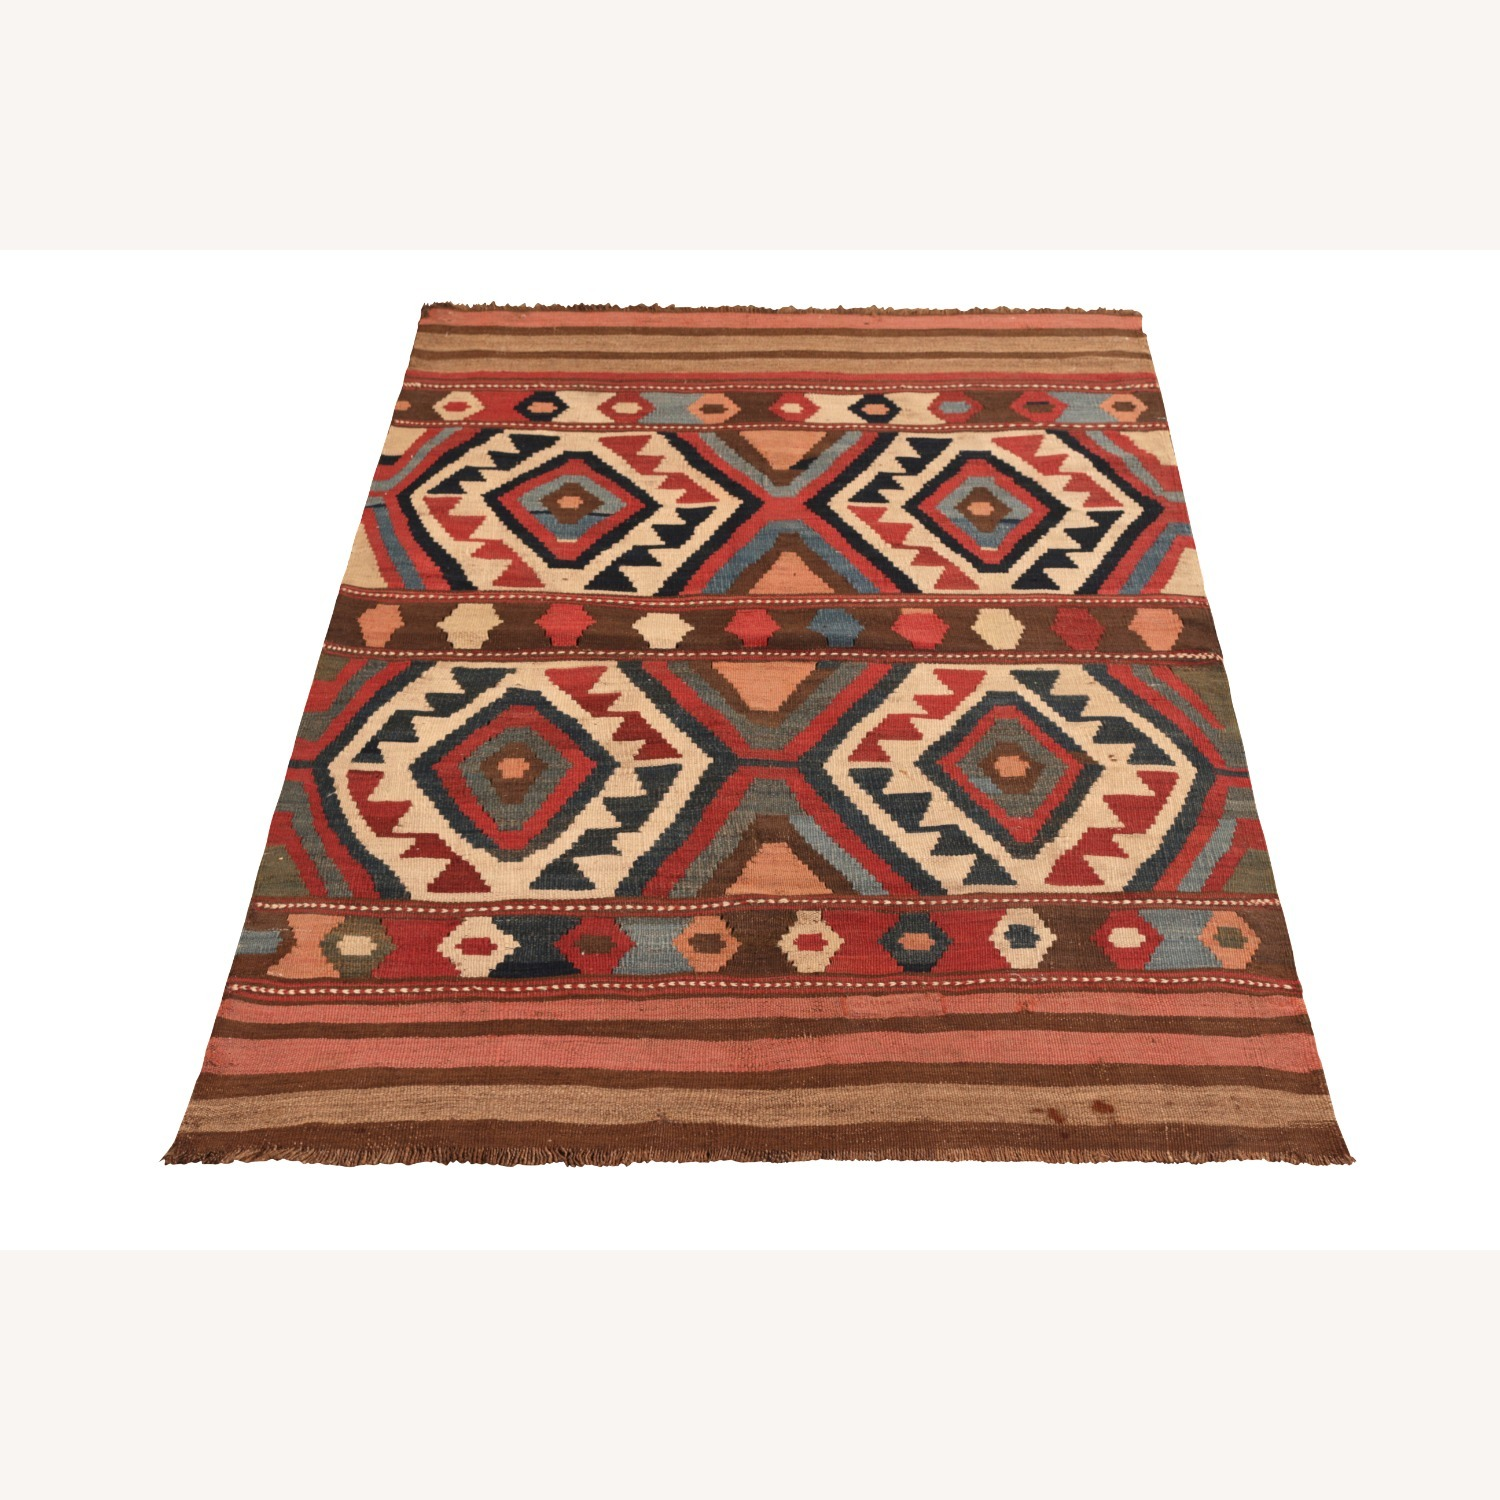 Antique Shahsavan Rug Transitional Tribal Pattern - image-2